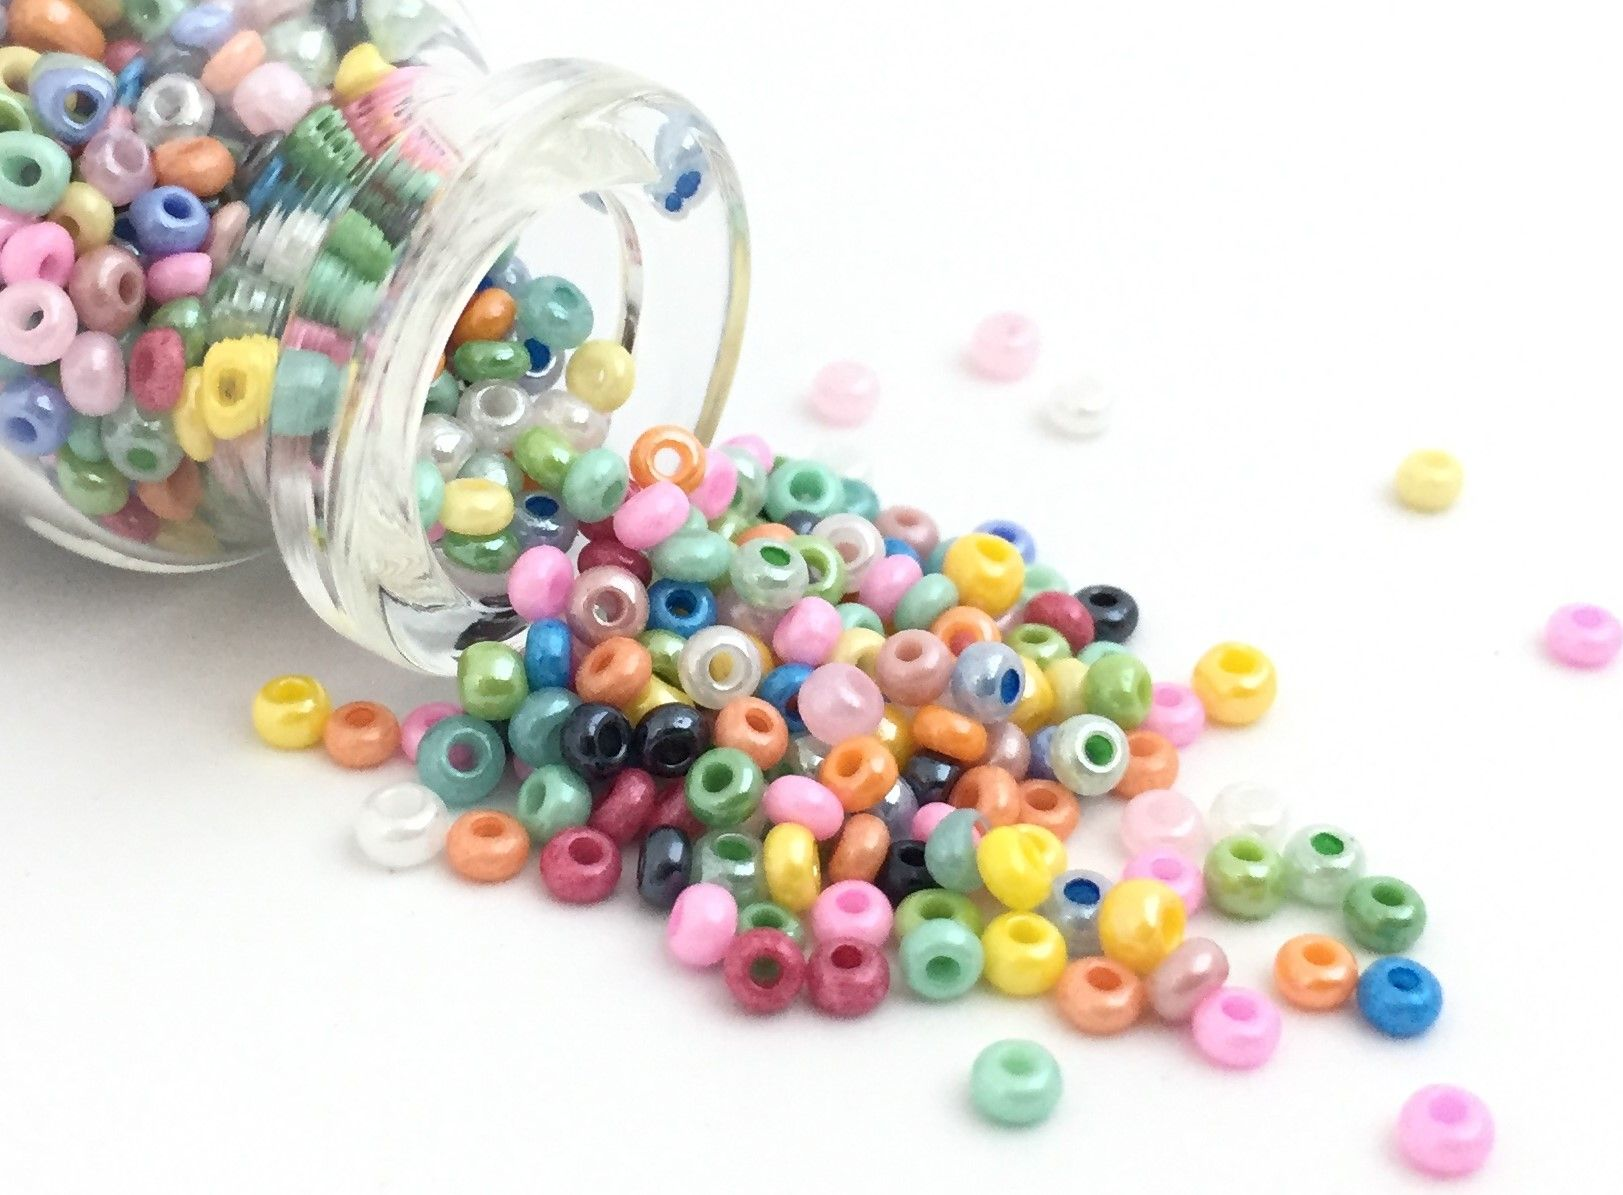 x bead glass beads small kg in silver wholesale australia supplies spacetrader buy foil reviews bulk mix